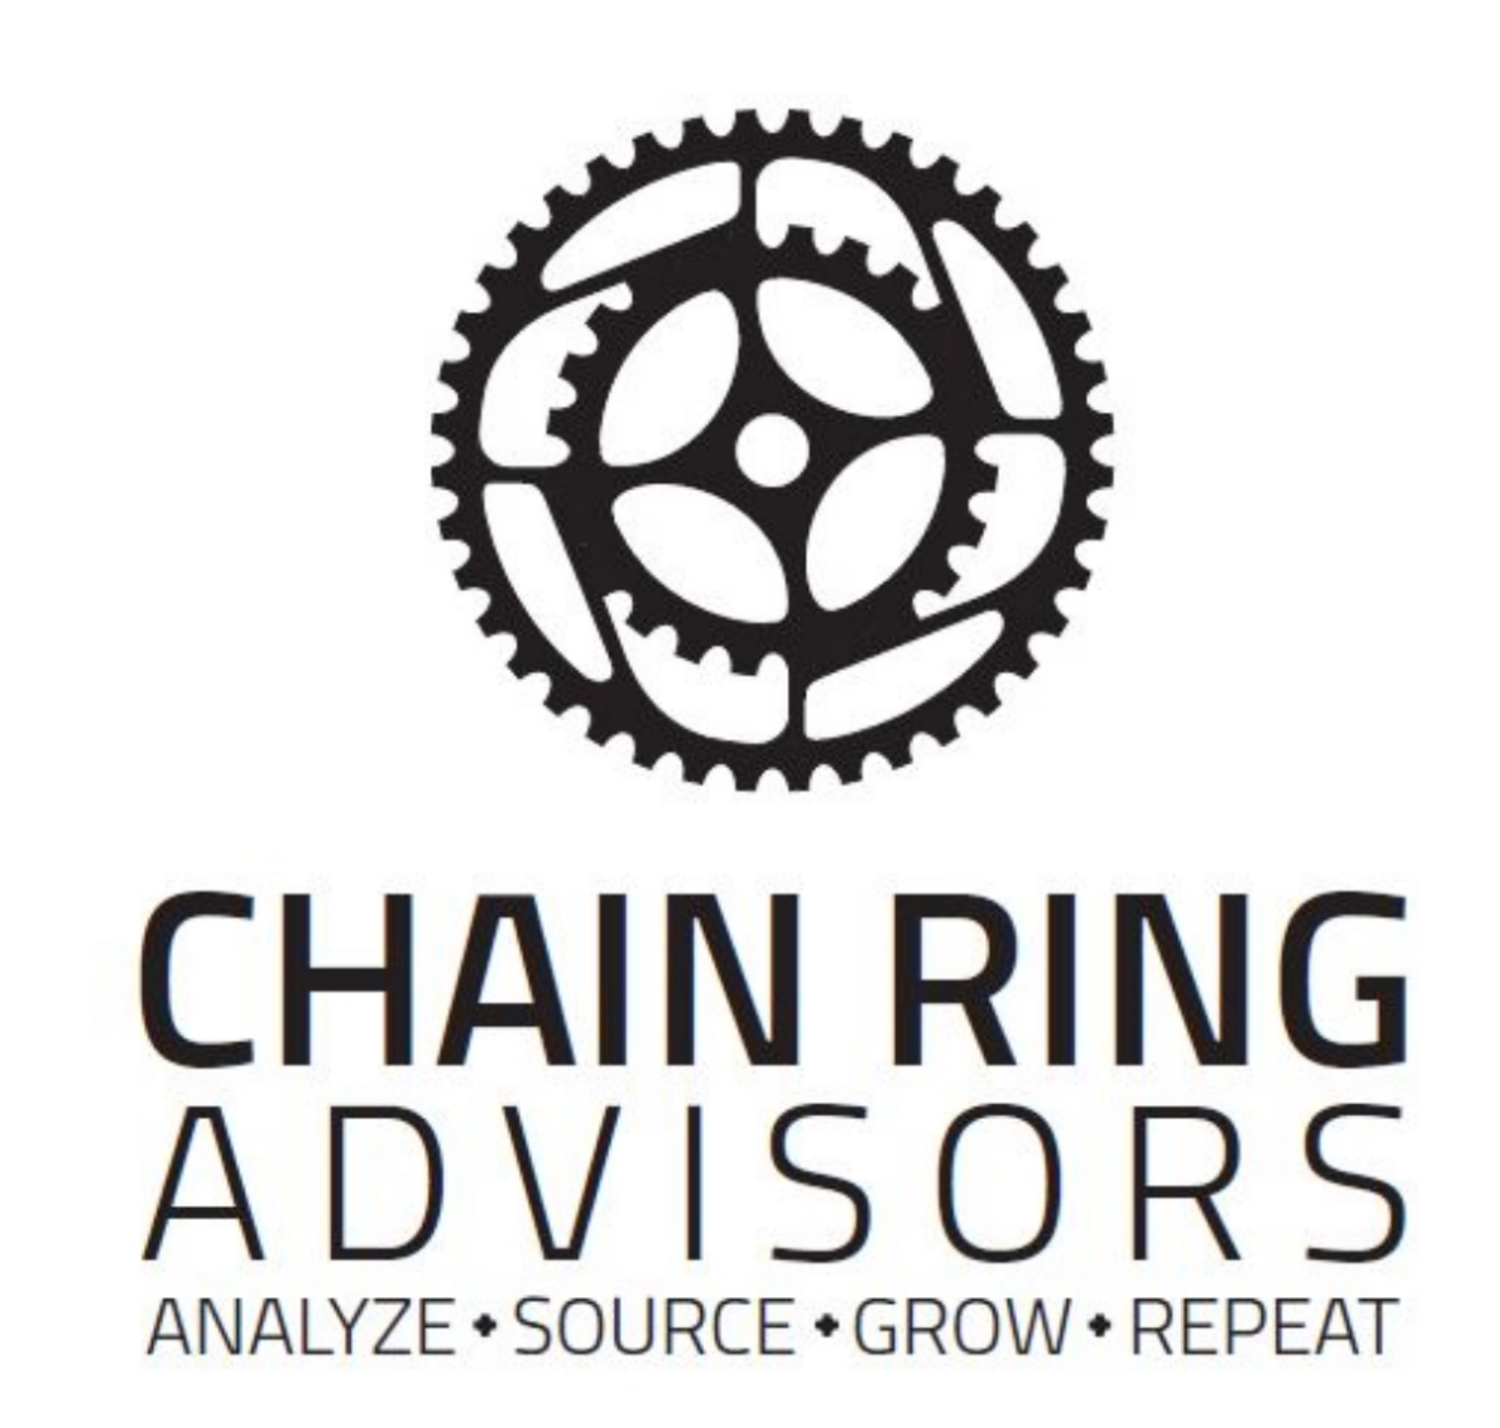 ChainRing Advisors